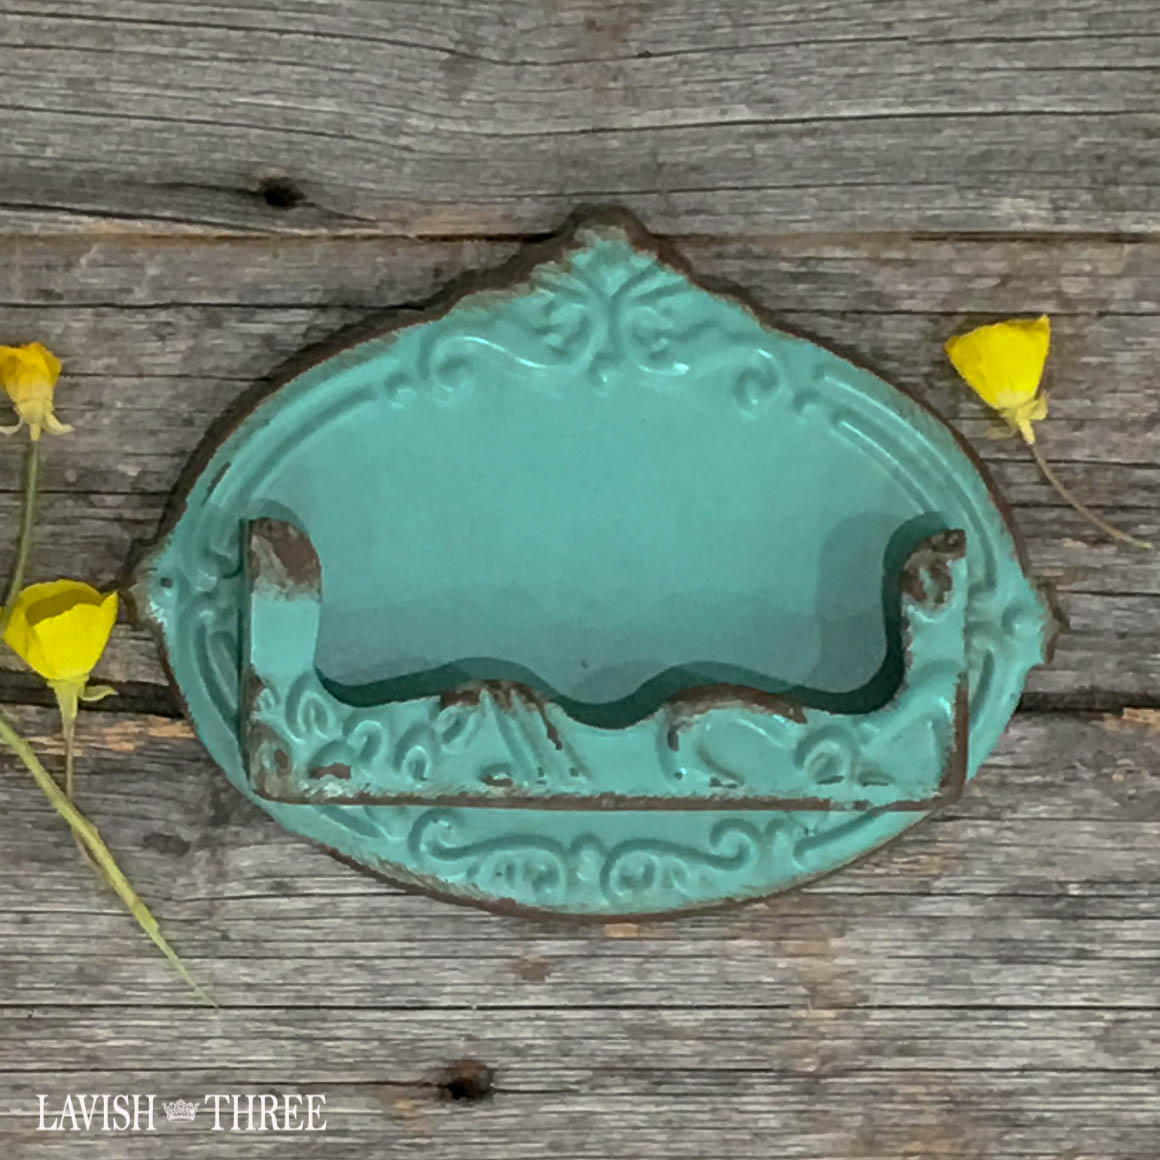 Vintage antique look shabby chic metal embossed business card holder blue green Lavish three 3